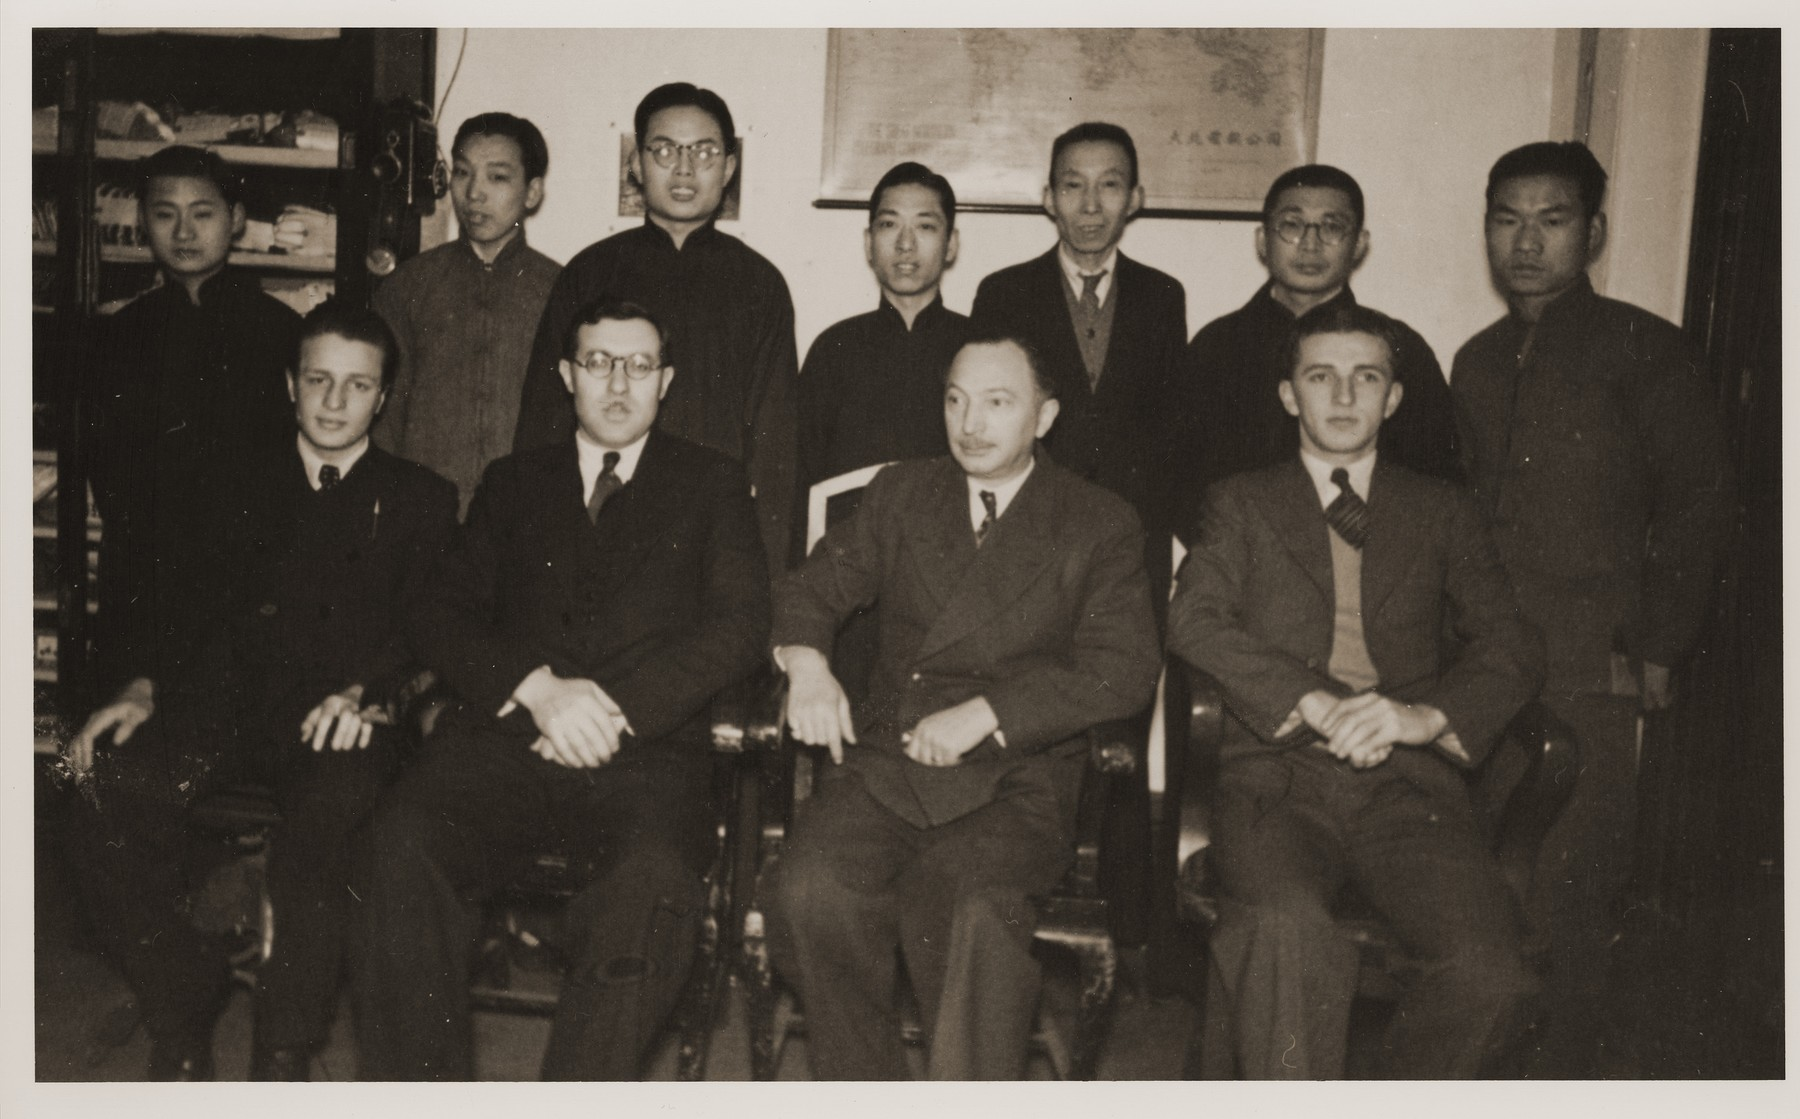 Group portrait of the staff of the International Committee for European Immigrants in China.  Paul Komor is seated second from the right; Eric Goldstaub is seated first on the left.